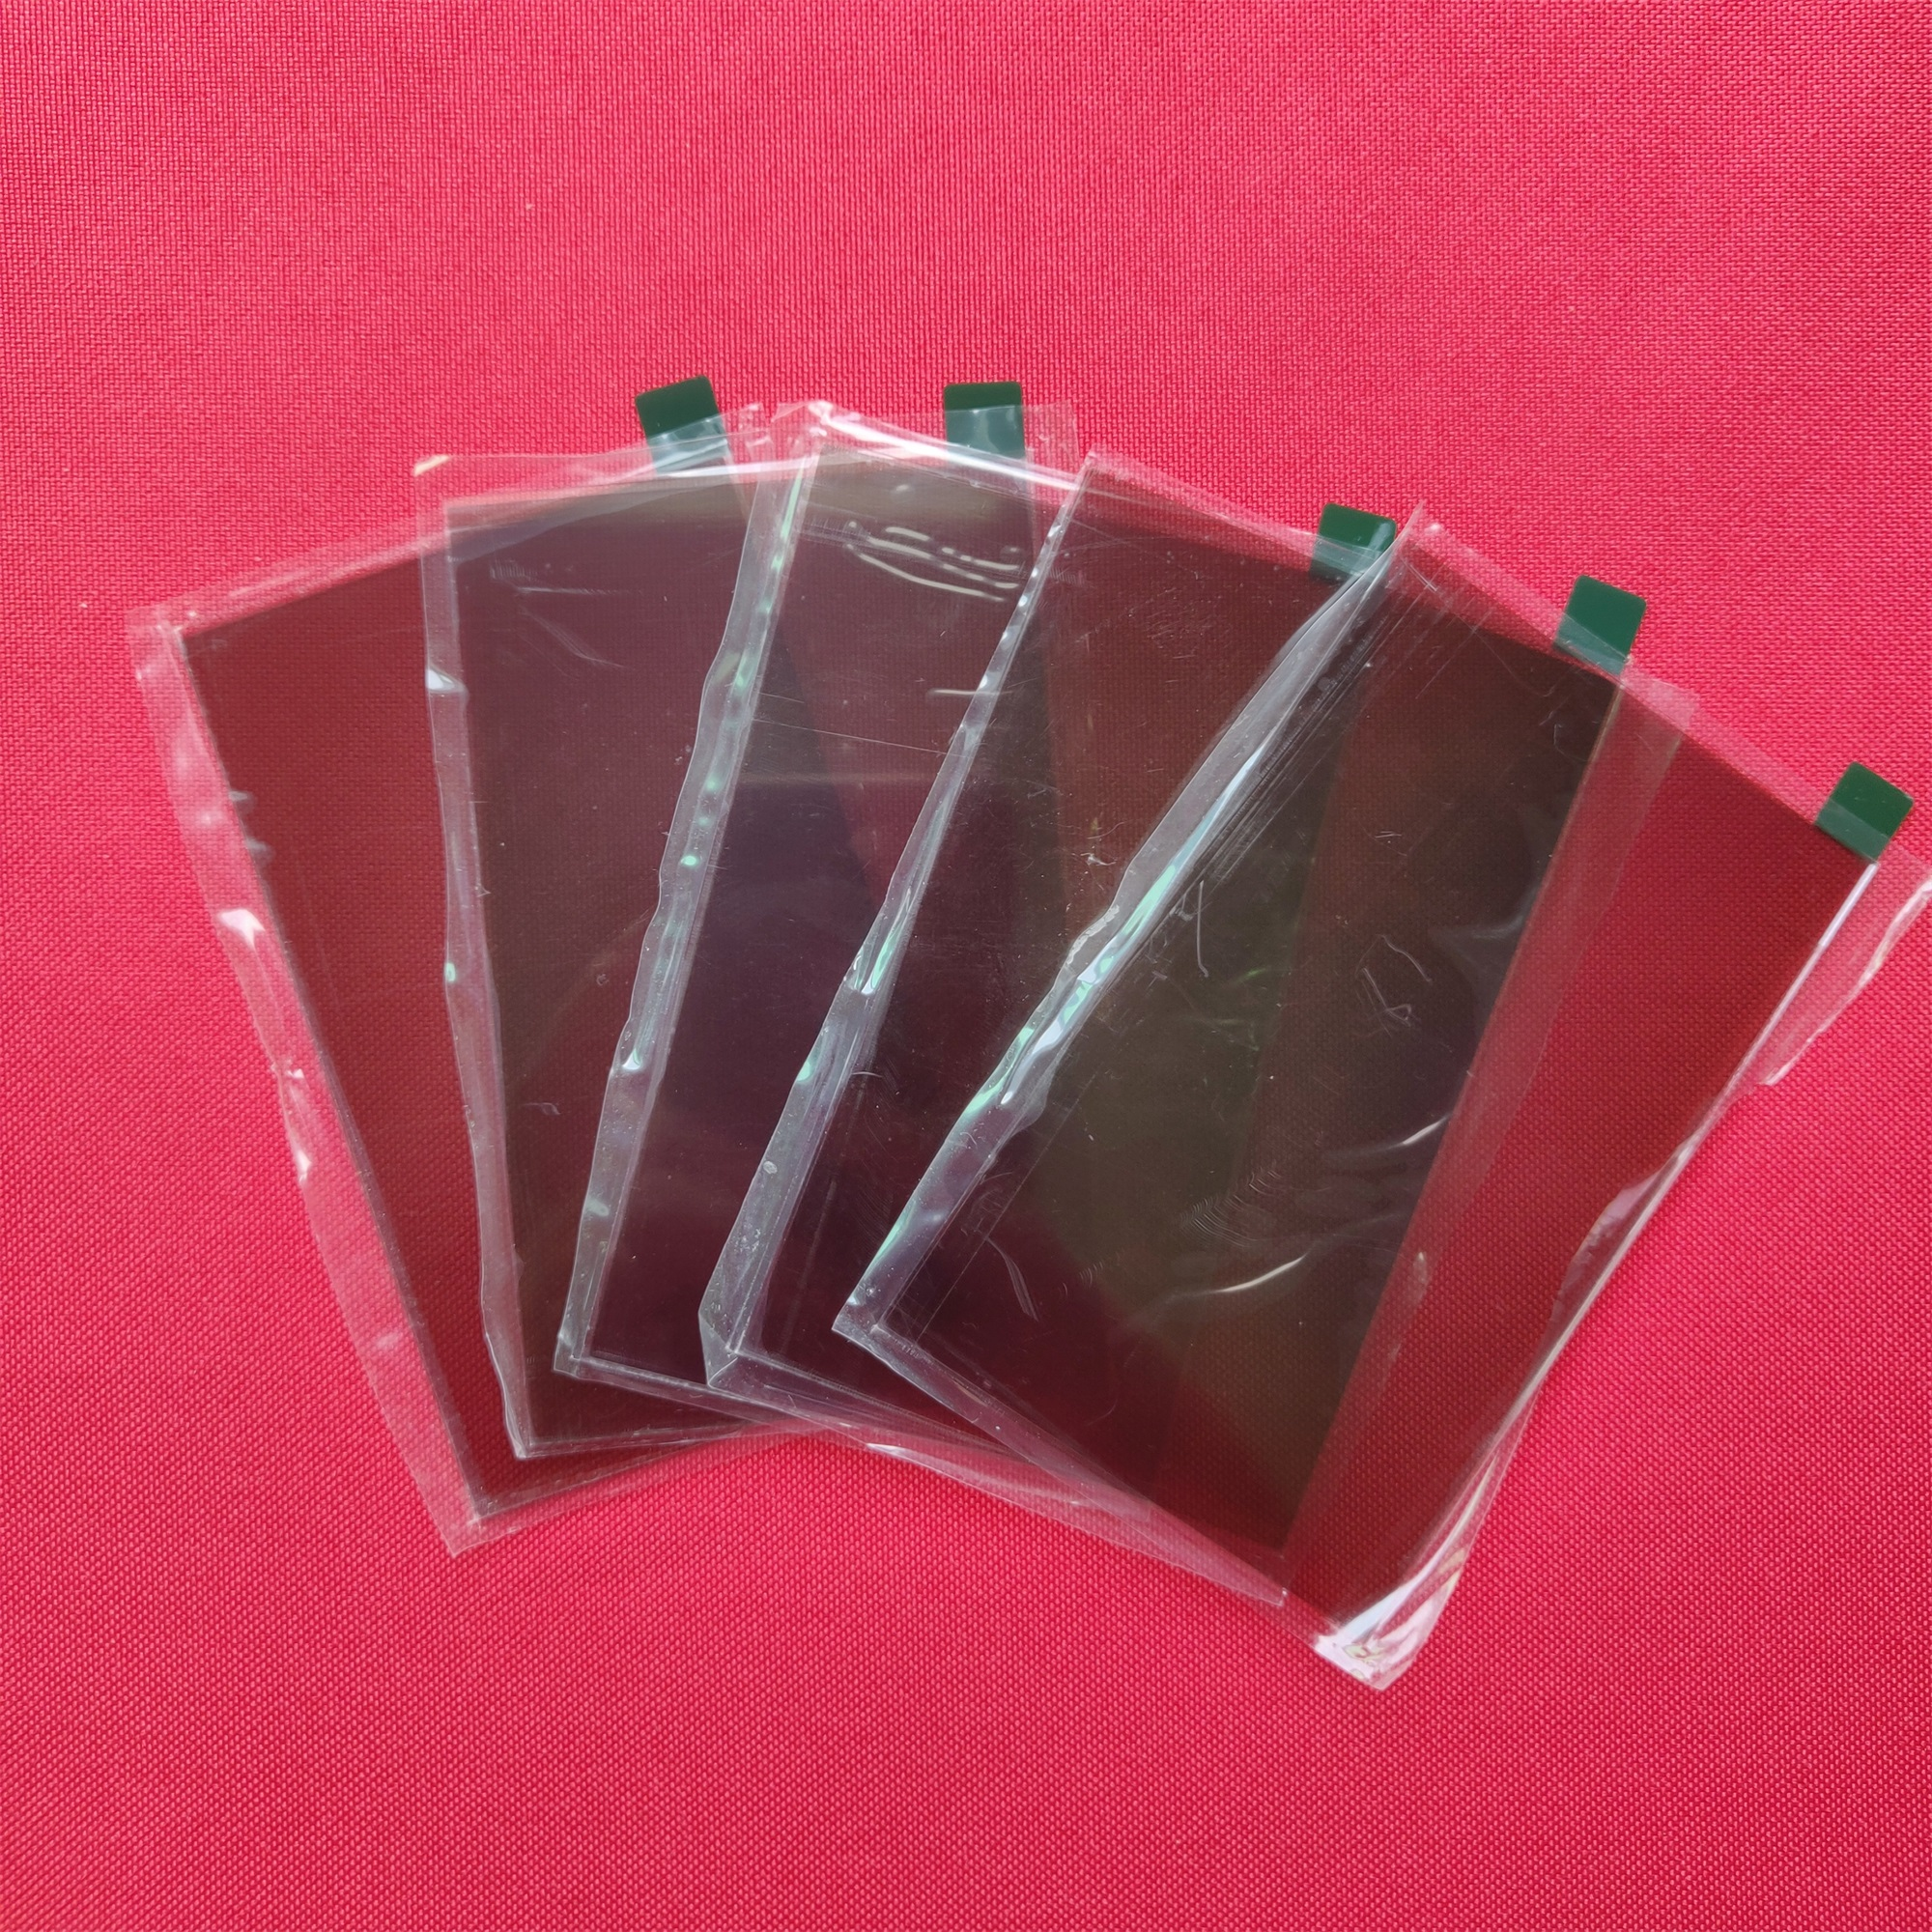 5 pcs thermal-isolating glass polarizer glass 96*60*1.2mm for 4 inch mini <font><b>projector</b></font> repair parts for <font><b>Unic</b></font> UC40 <font><b>UC46</b></font> Rigal image